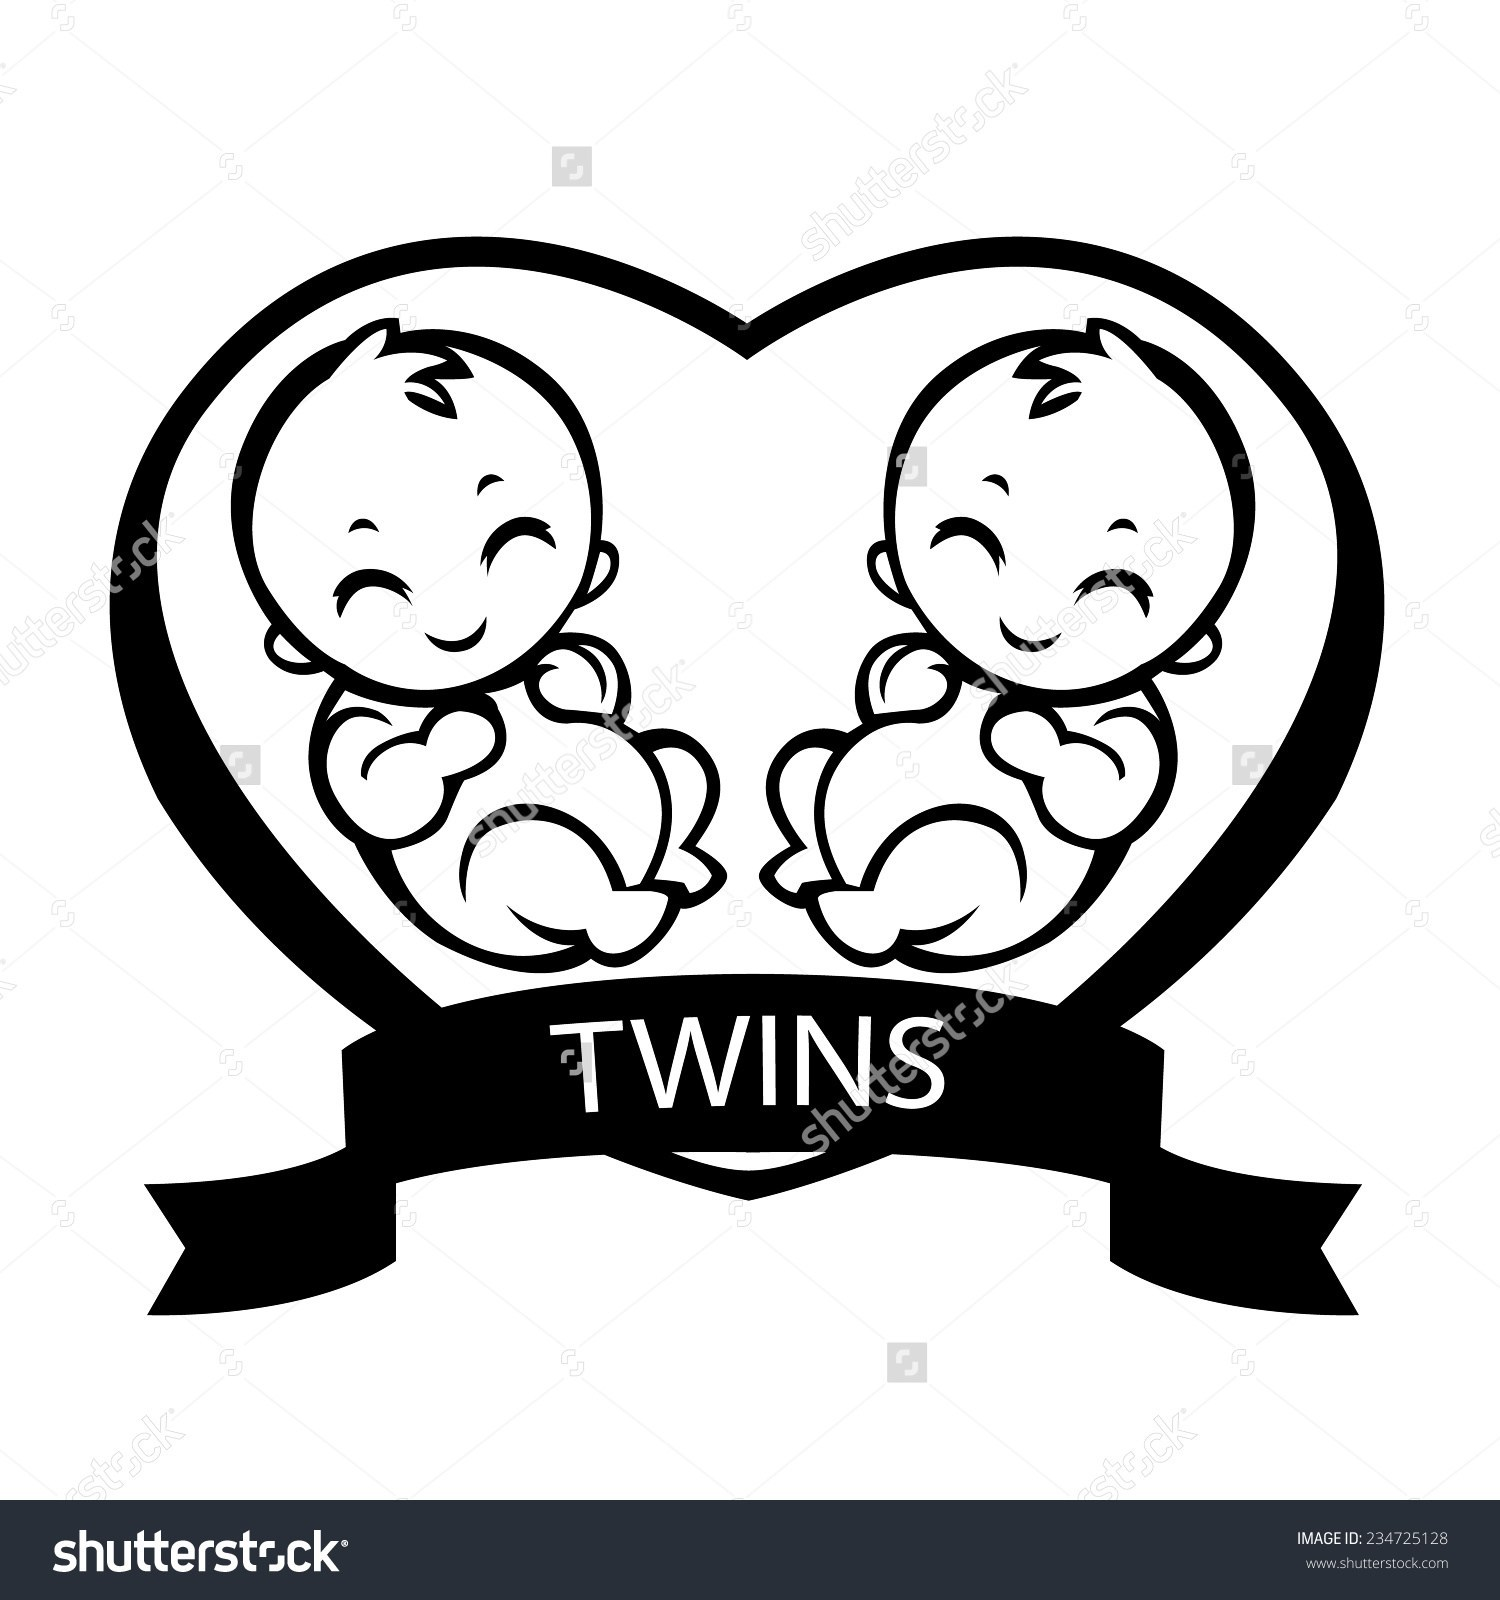 Feet clip art to. Twins clipart twin baby